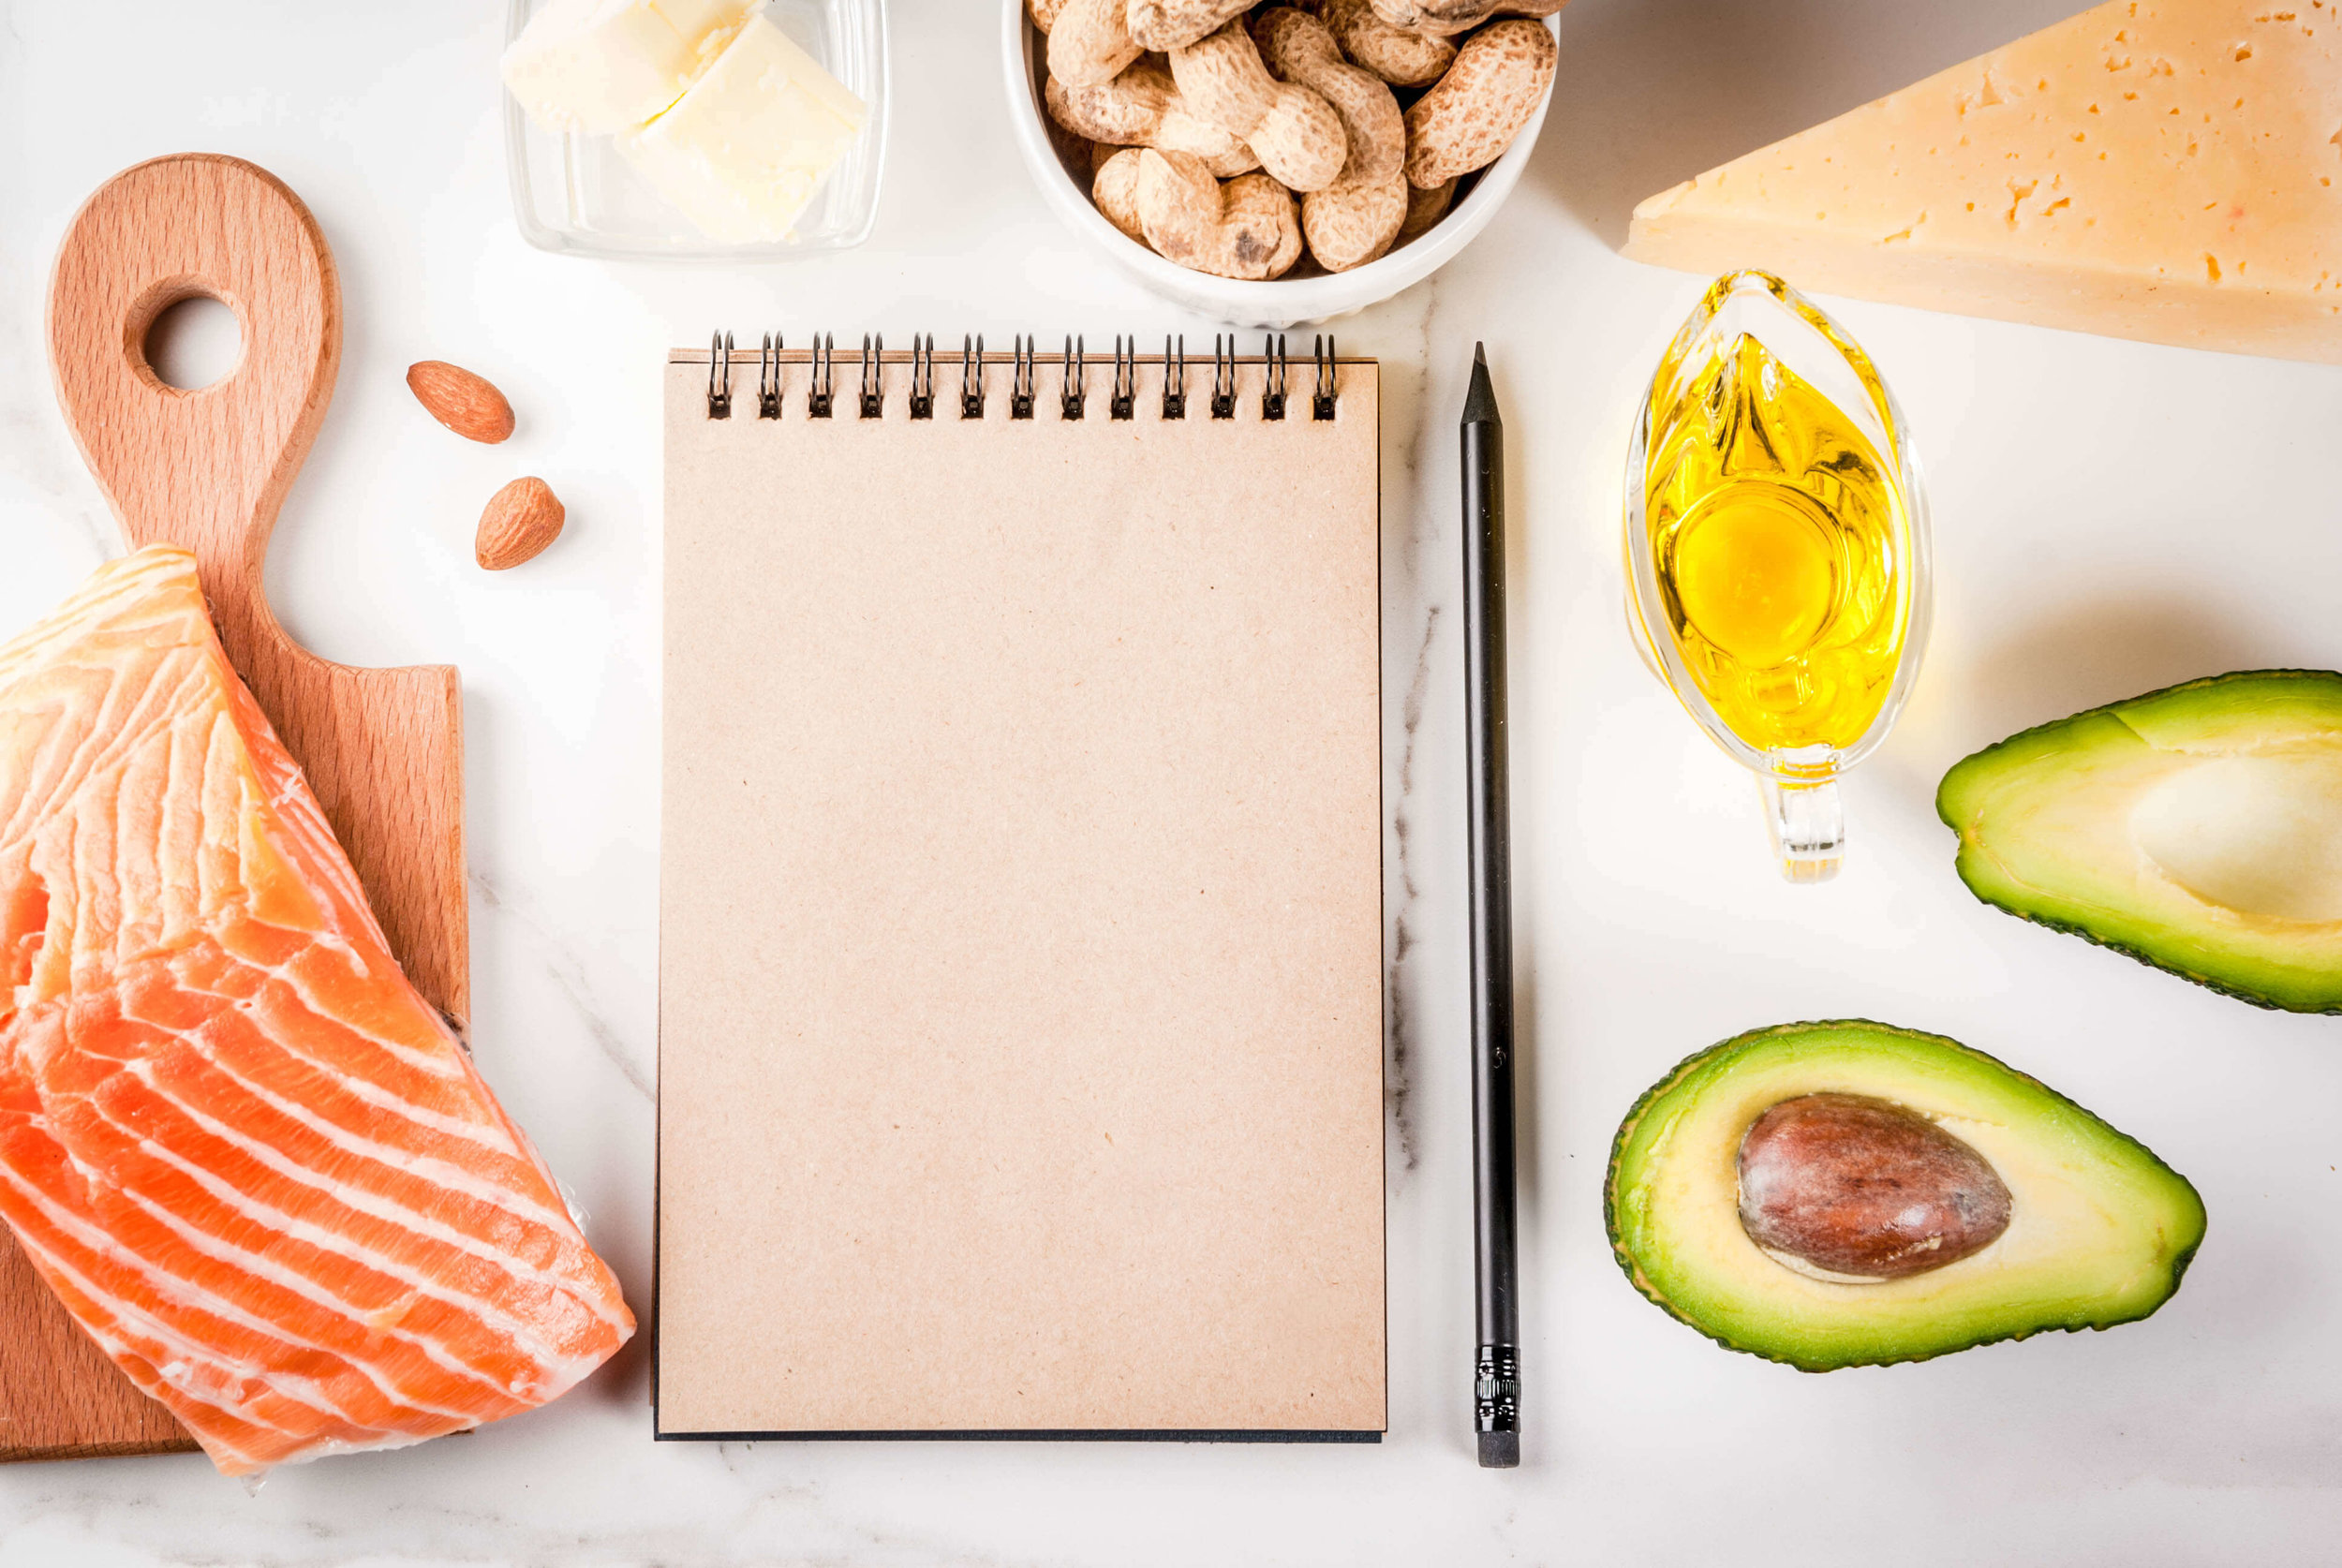 Meal Plan Food Notebook Ridiculously Simple Meal Plan Strategy Tiny.jpeg